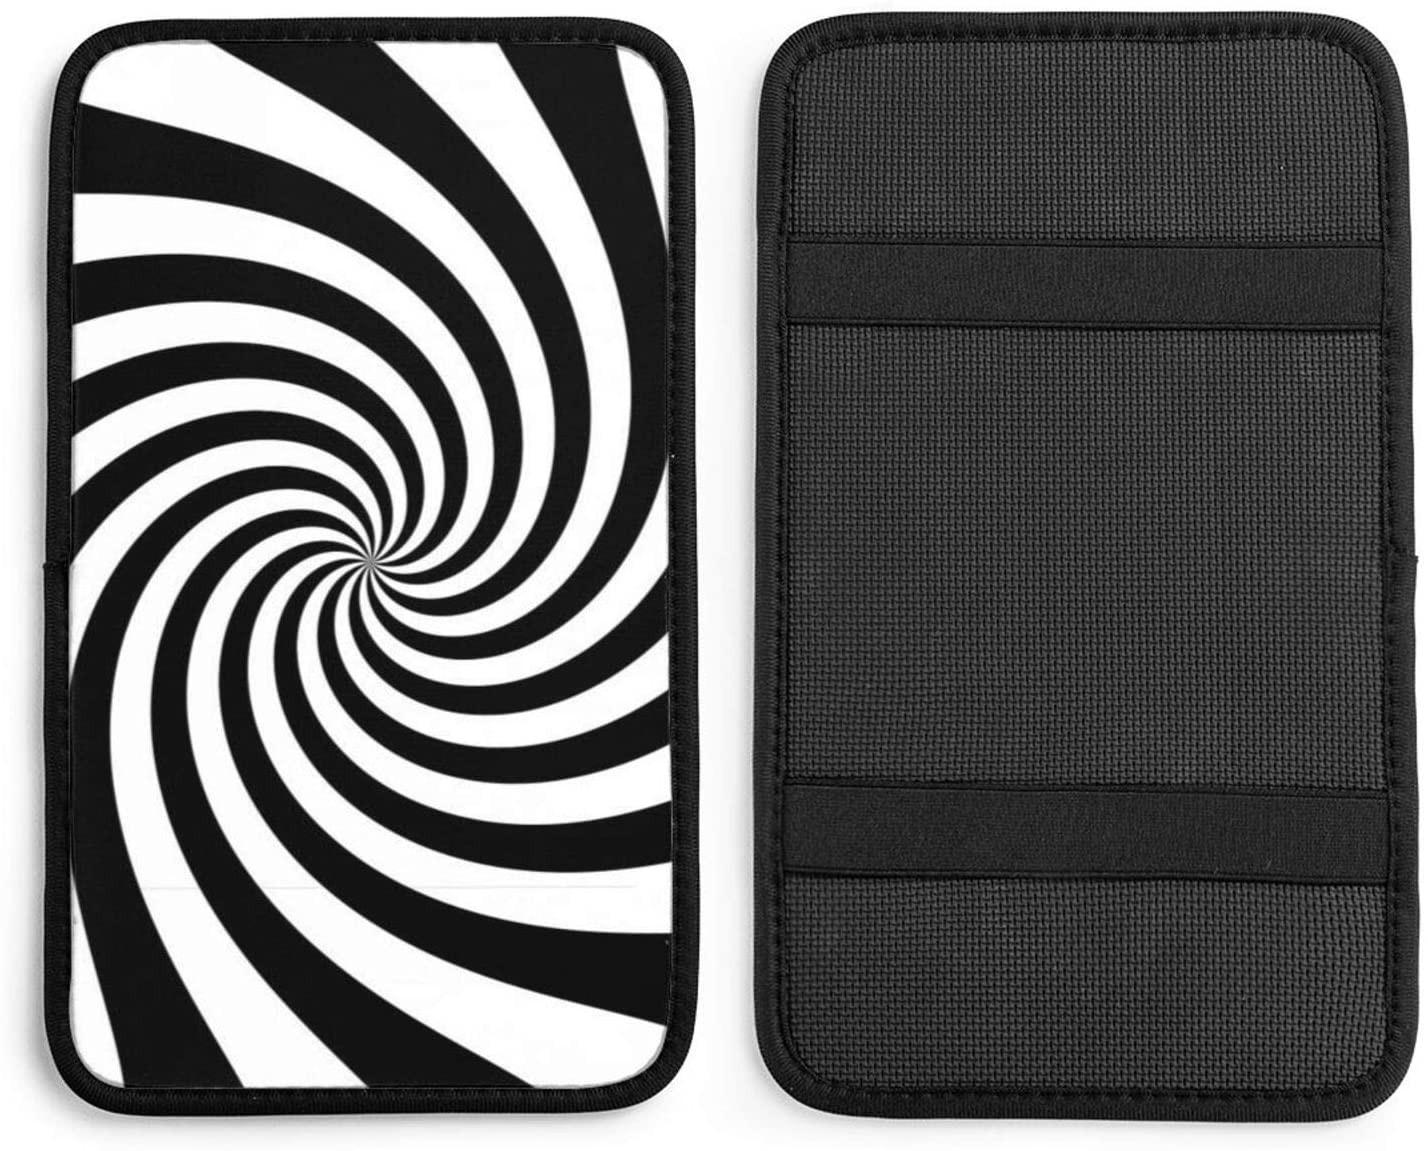 NDZHZEO White and Black Starburst Twirl Auto Center Console Pad Car Armrest Seat Box Cover Protector Universal Fit